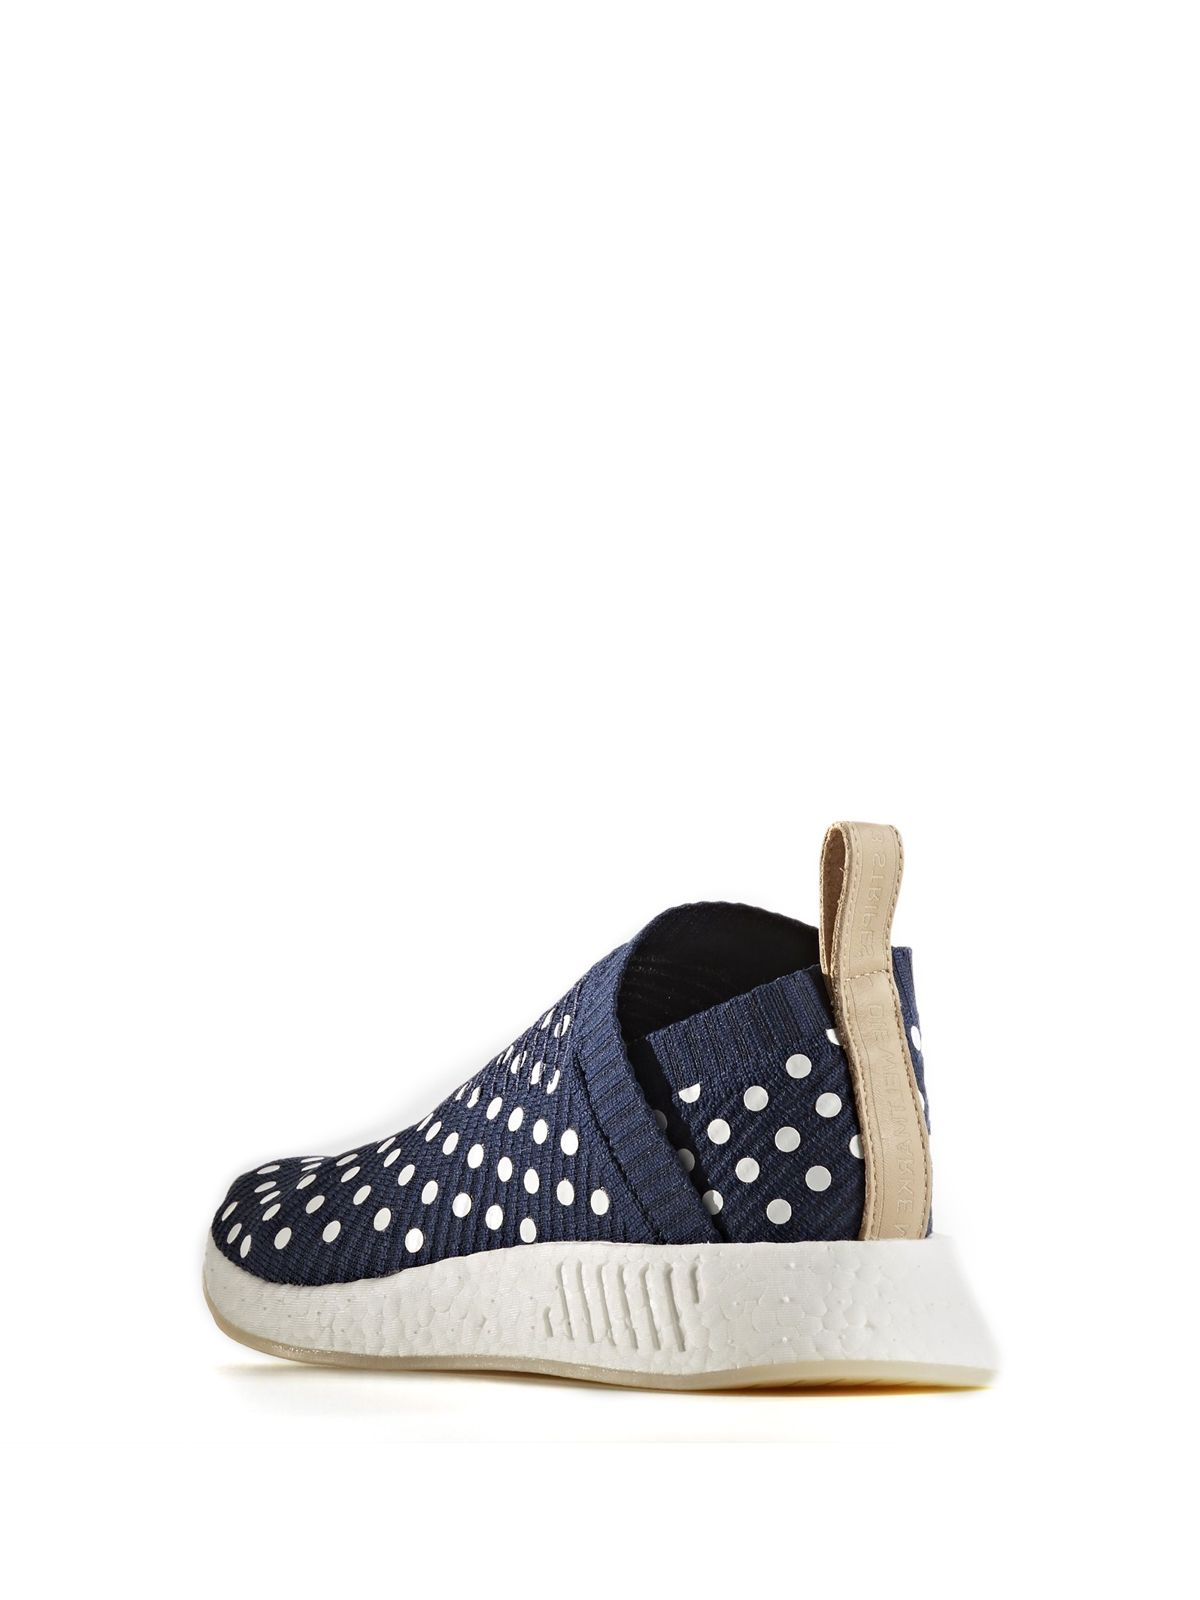 Originals NMD XR1 Lifestyle Shoes adidas US